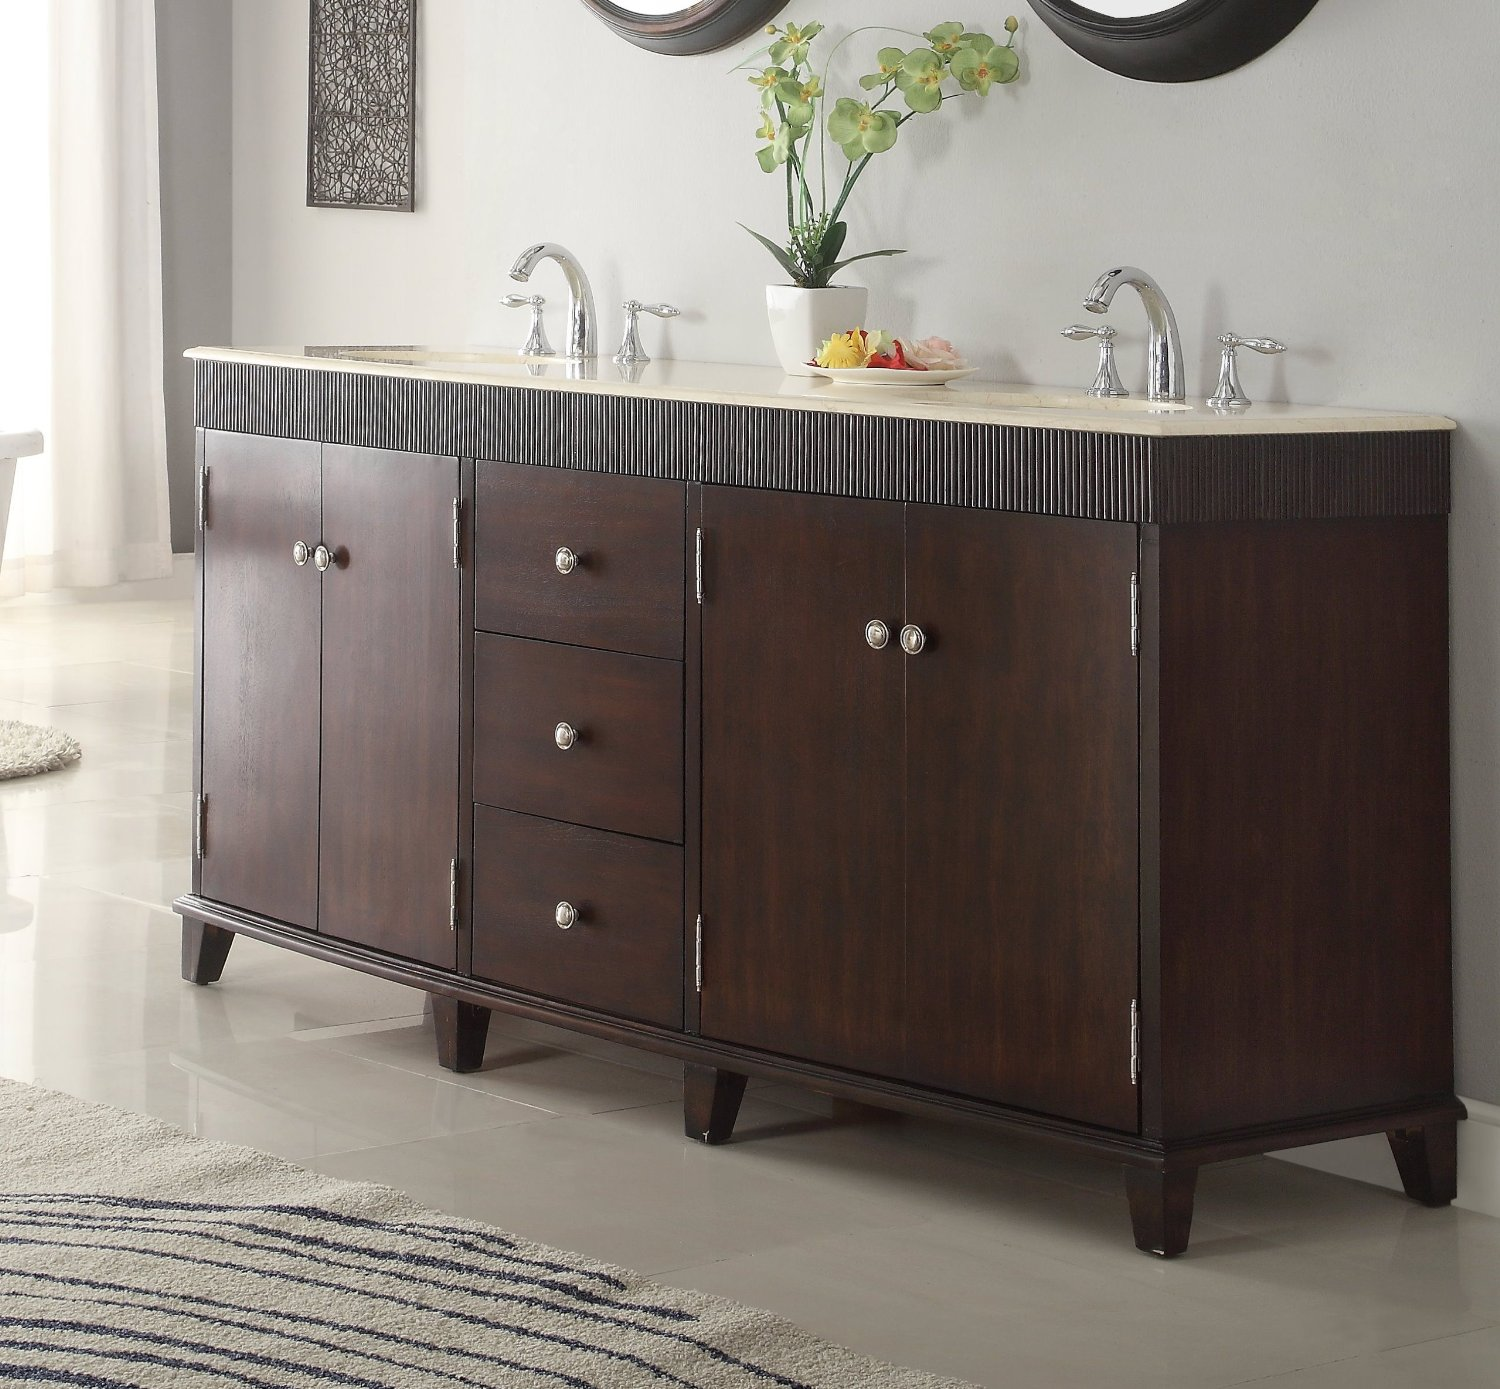 adelina 72 inch contemporary double sink bathroom vanity, cream